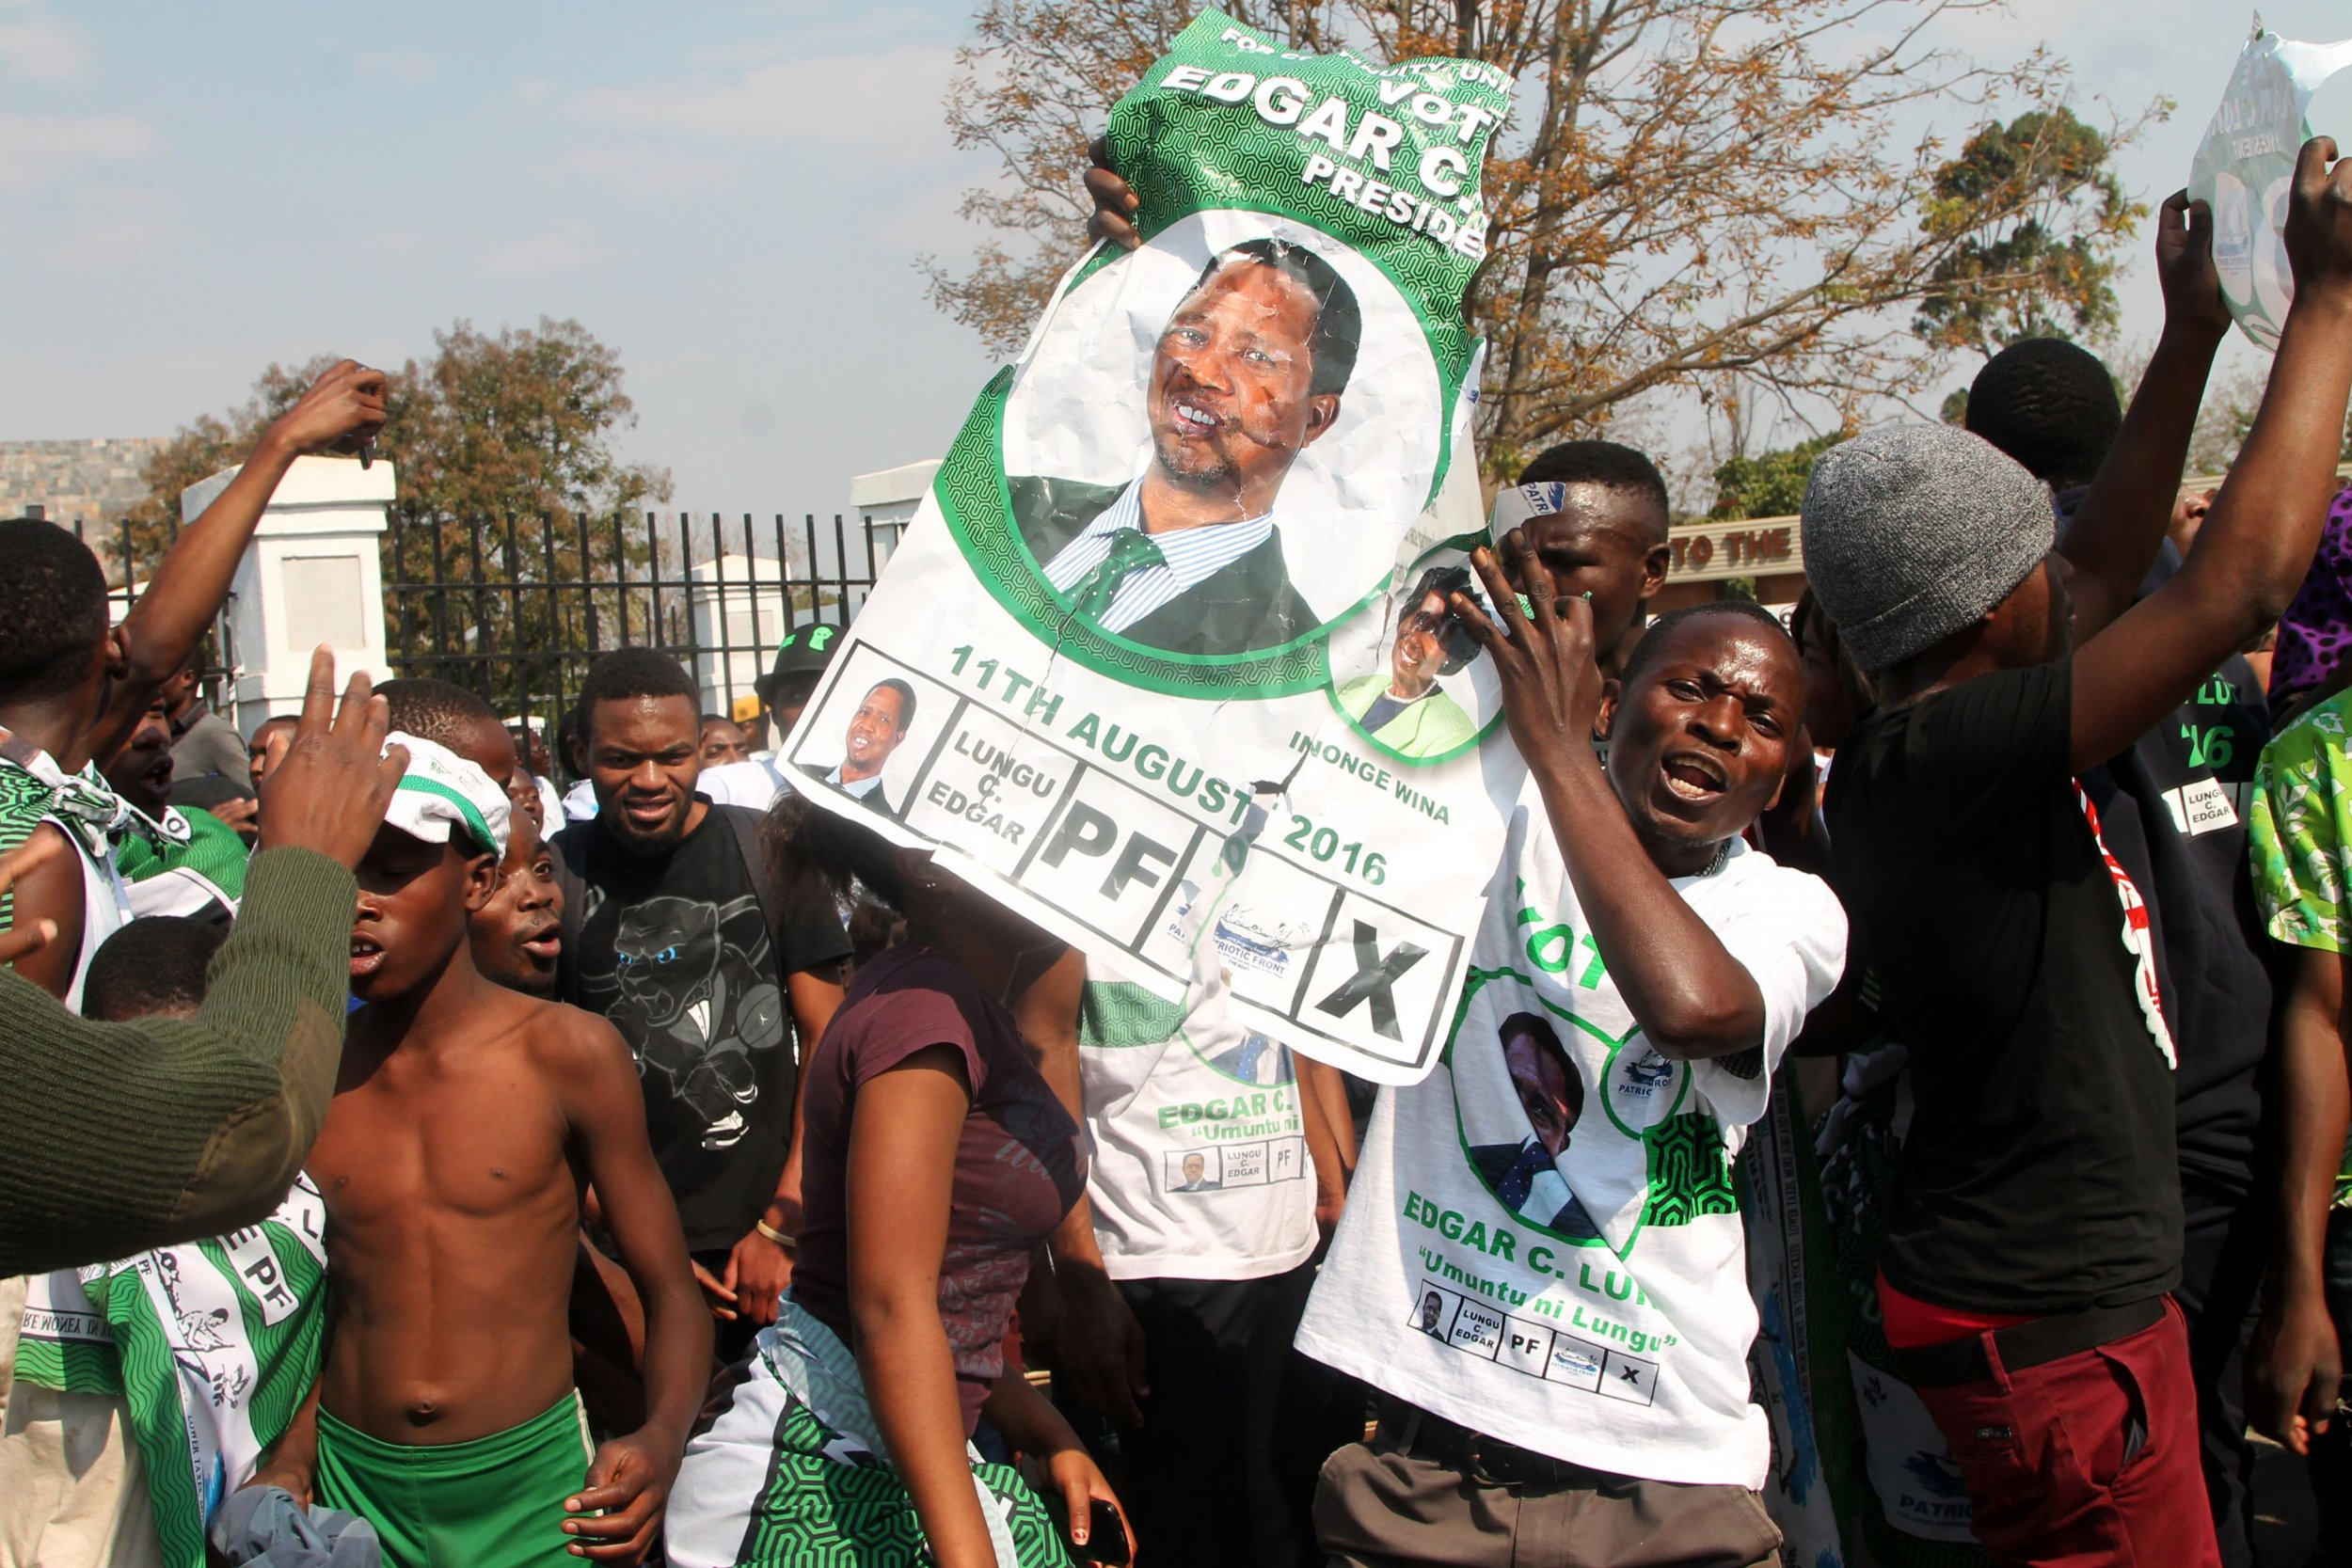 Zambia Patriotic Front supporters